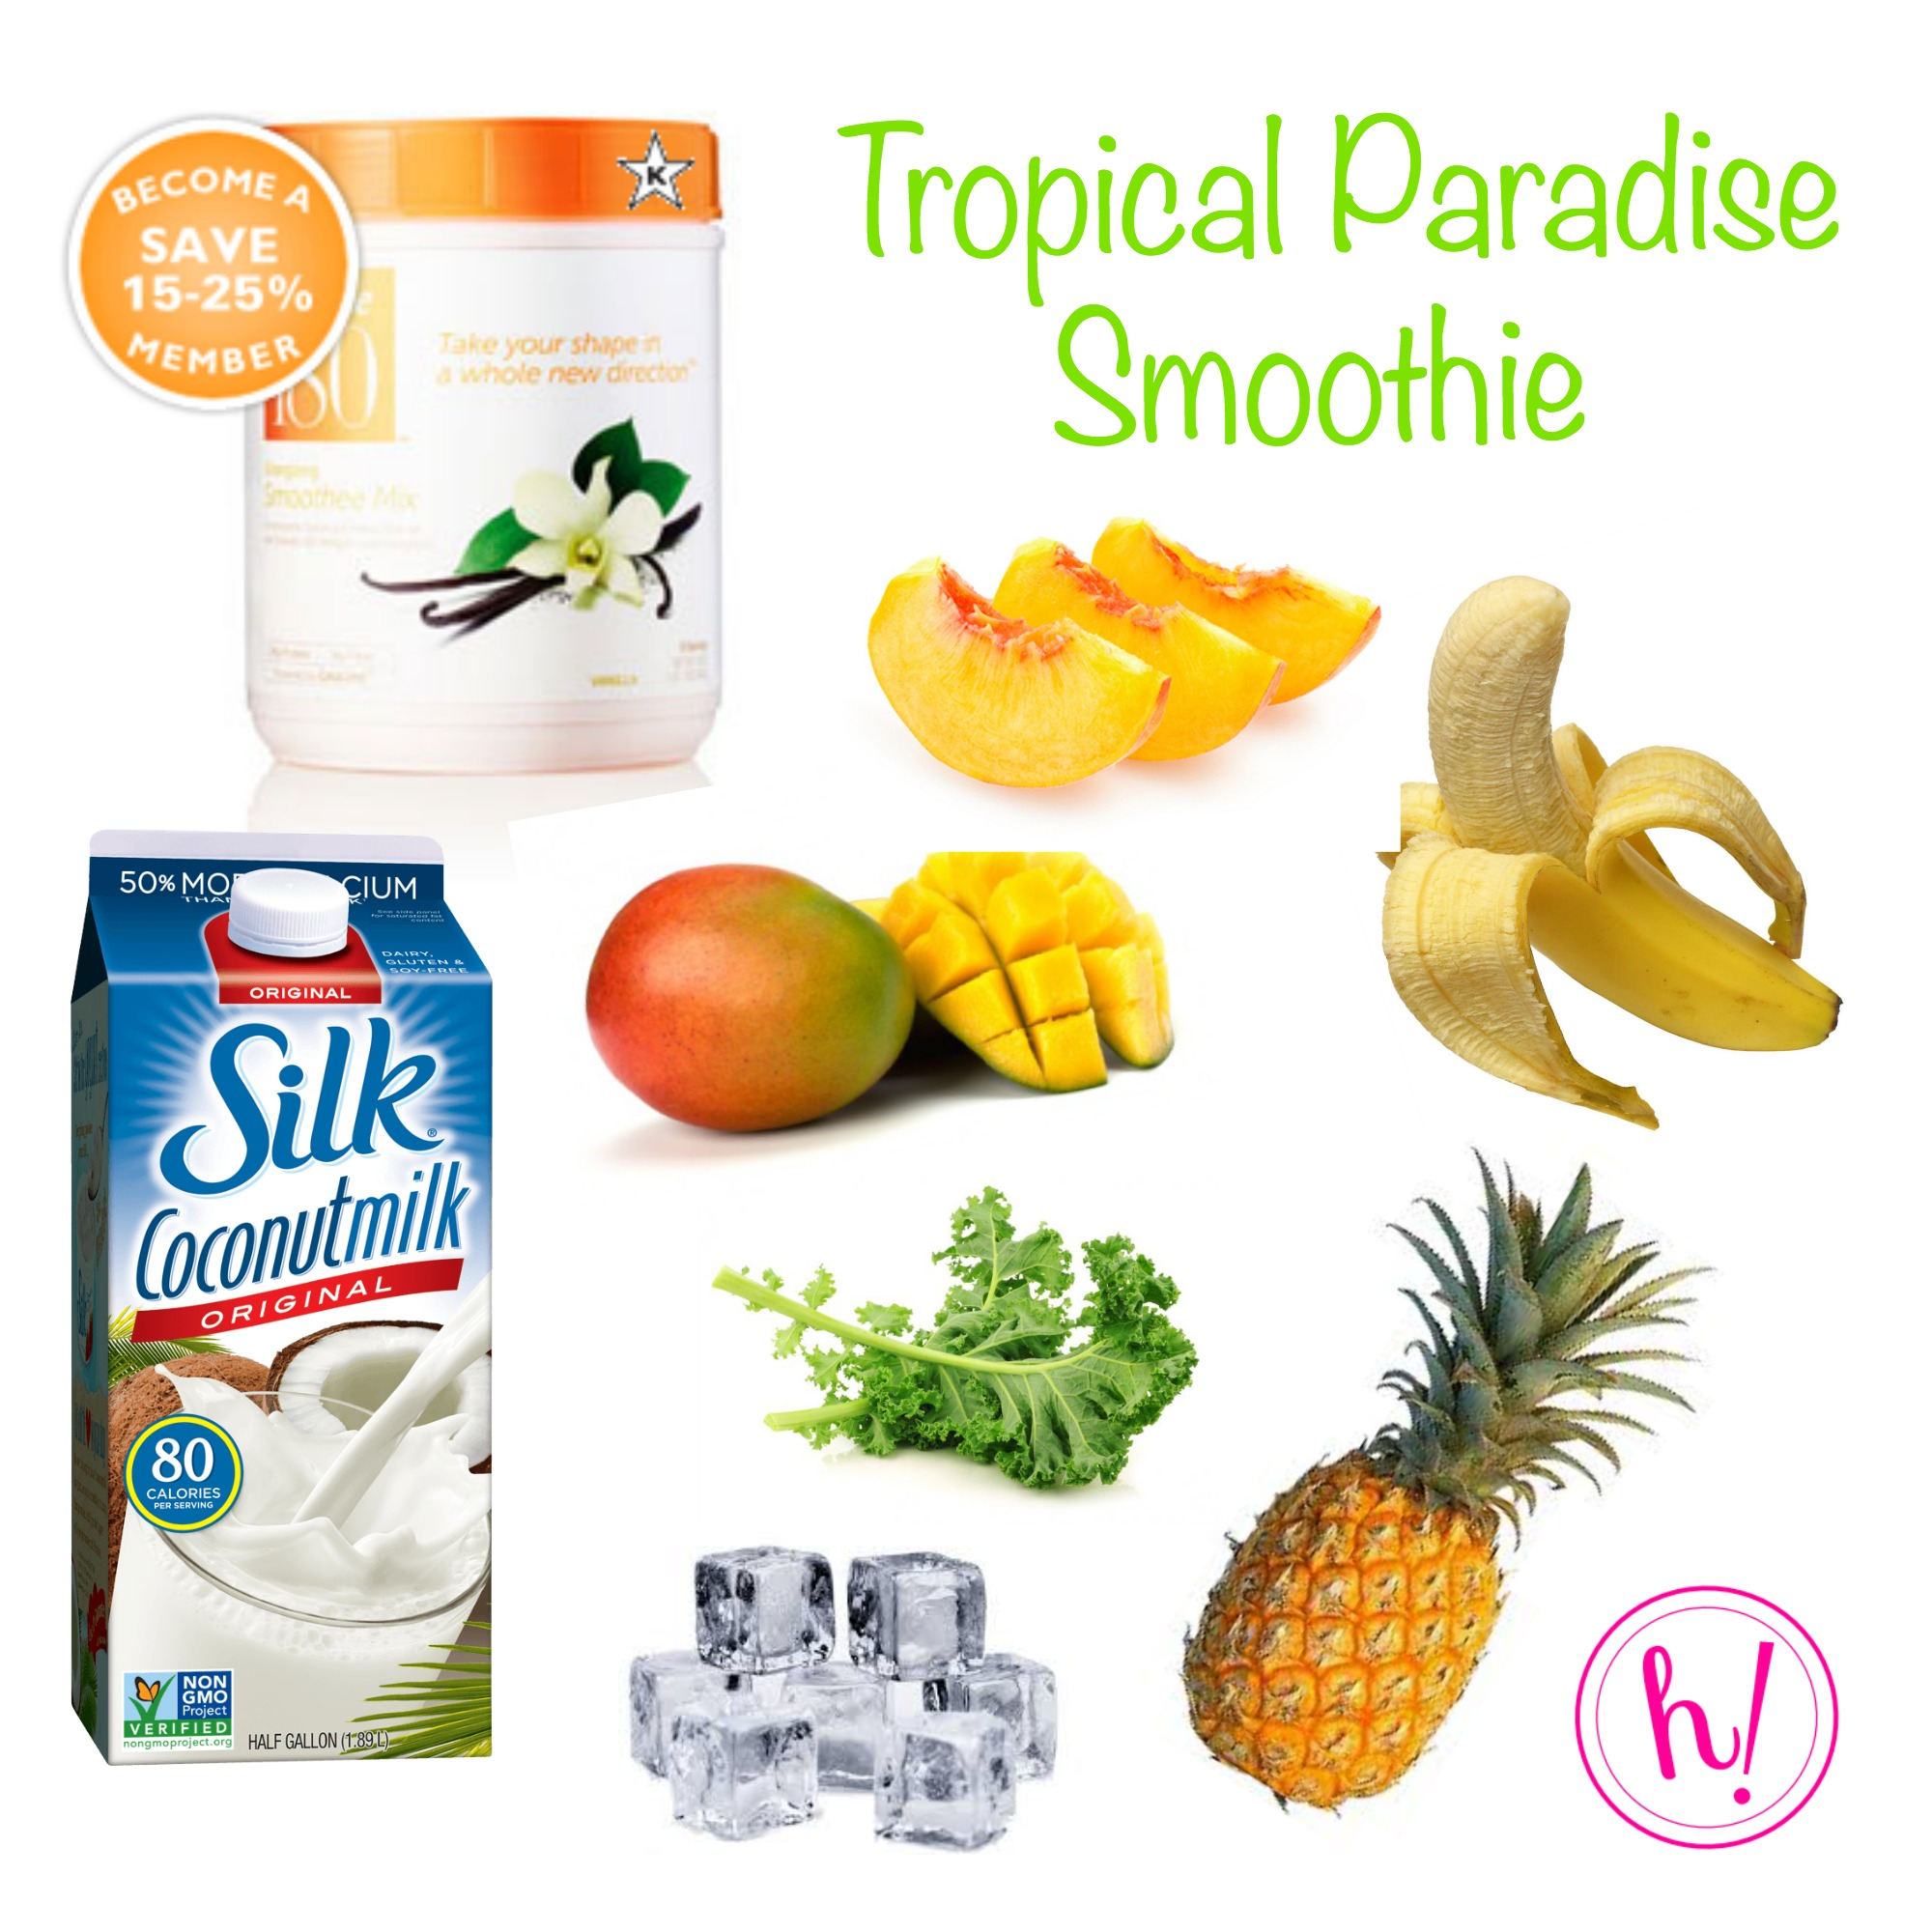 Tropical Paradise smoothie from Hurray Kimmay